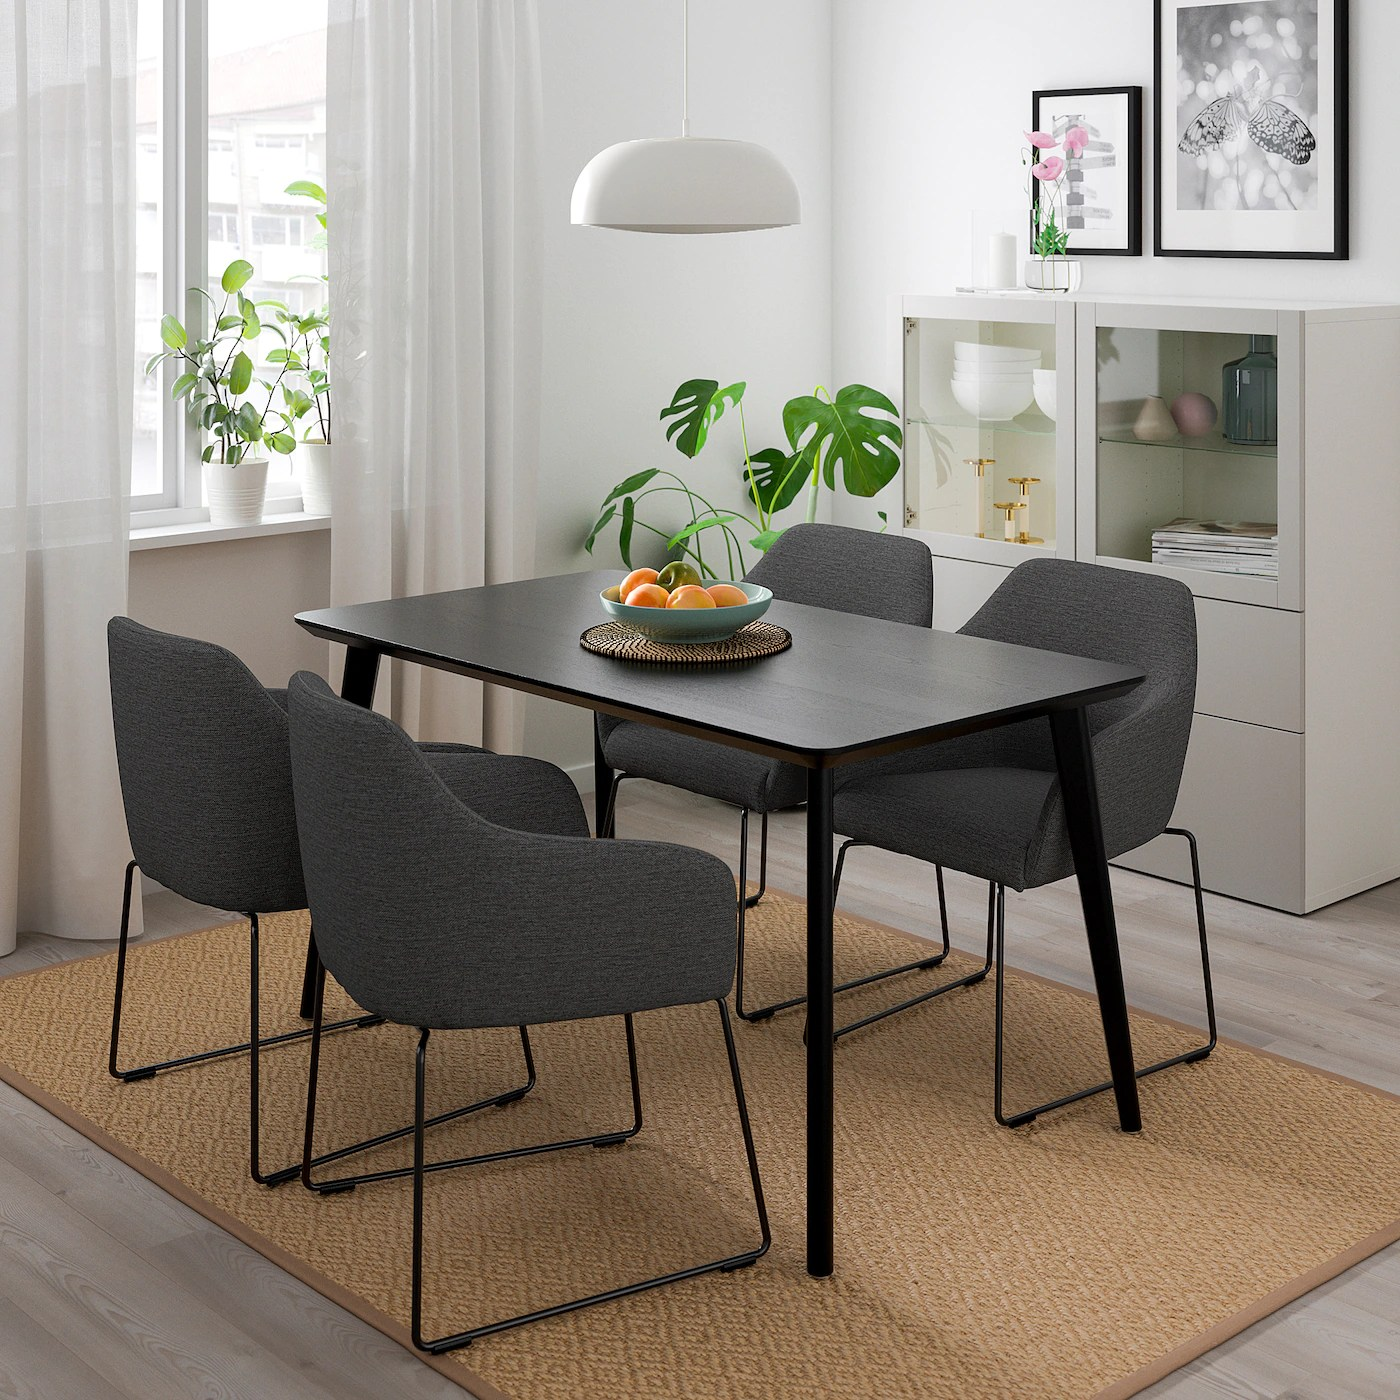 Lisabo Tossberg Table And 4 Chairs Black Metal Grey Ikea